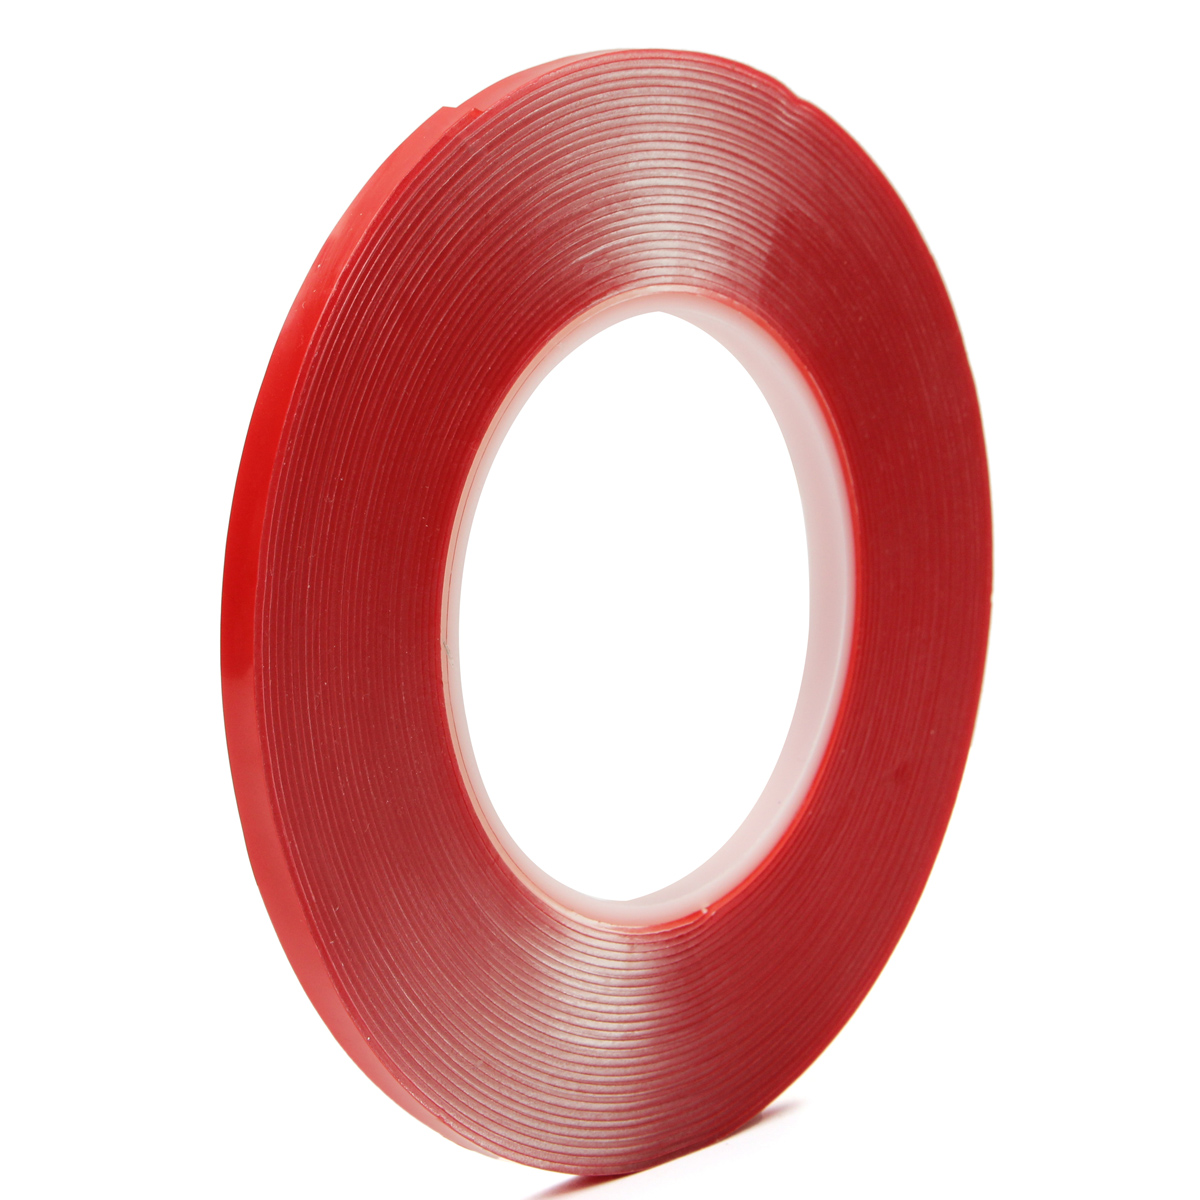 10m×6mm VHB 4910 Double Sided Transparent Acrylic Foam Adhesive Tape